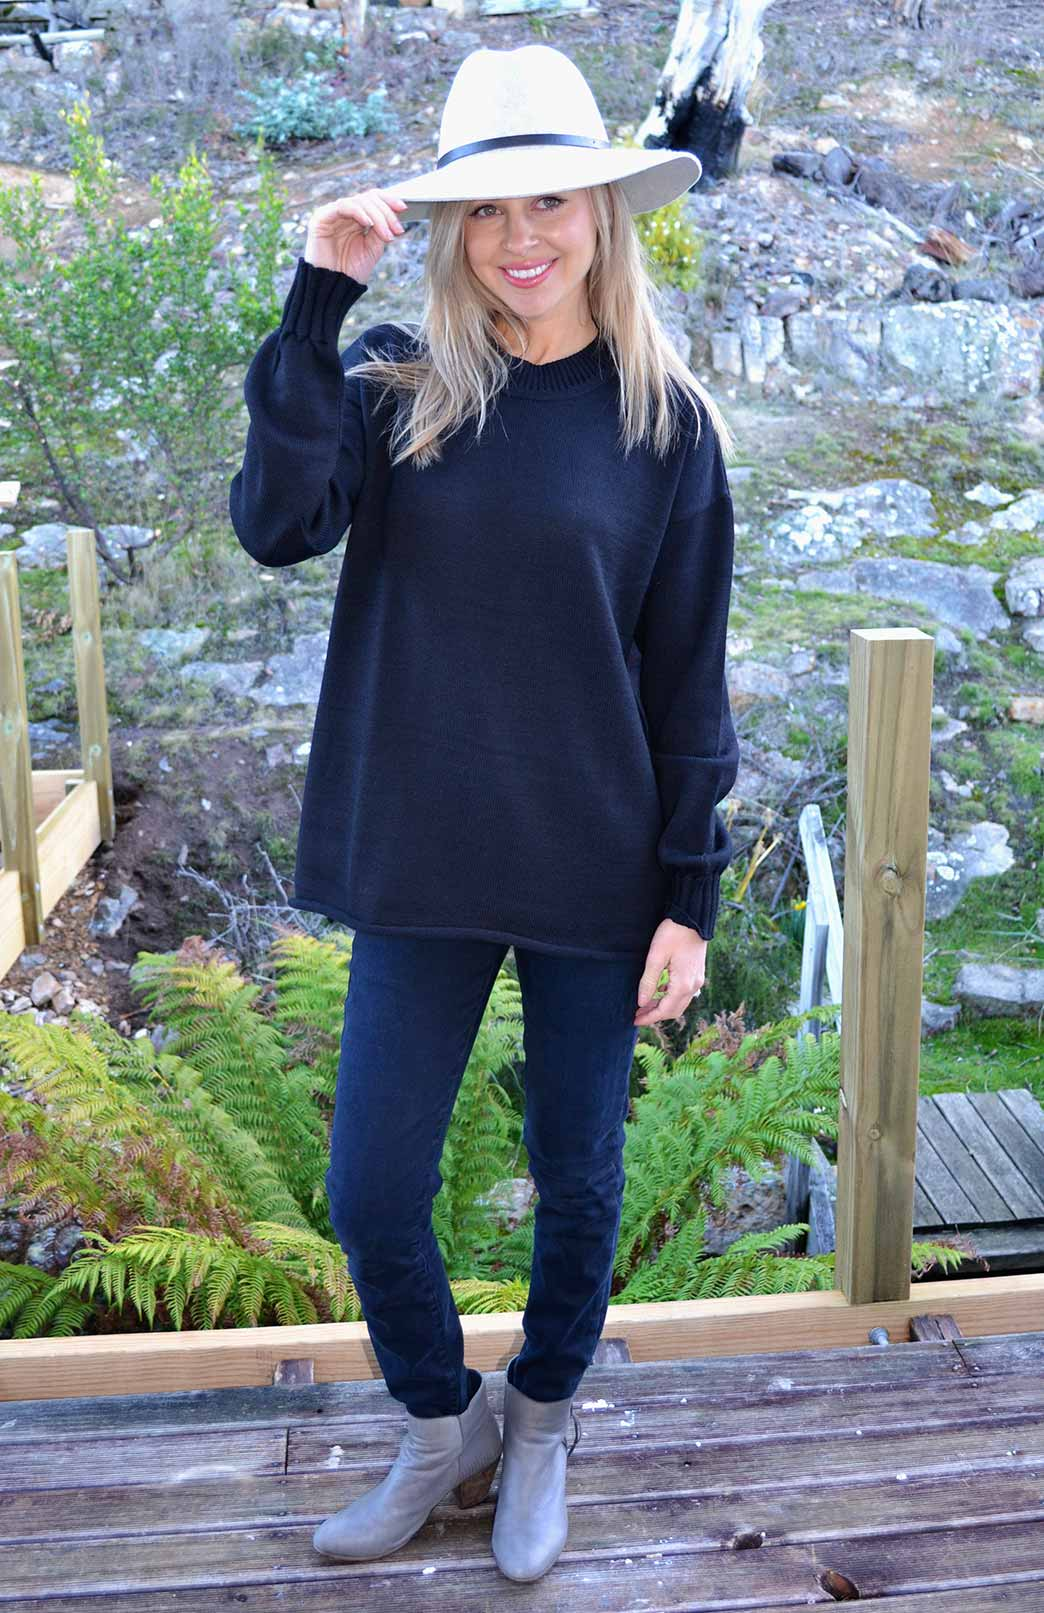 Sloppy Joe Crew Neck Jumper - Women's Black Chunky Knit Merino Wool Sloppy Joe Crew Neck Jumper with side splits - Smitten Merino Tasmania Australia